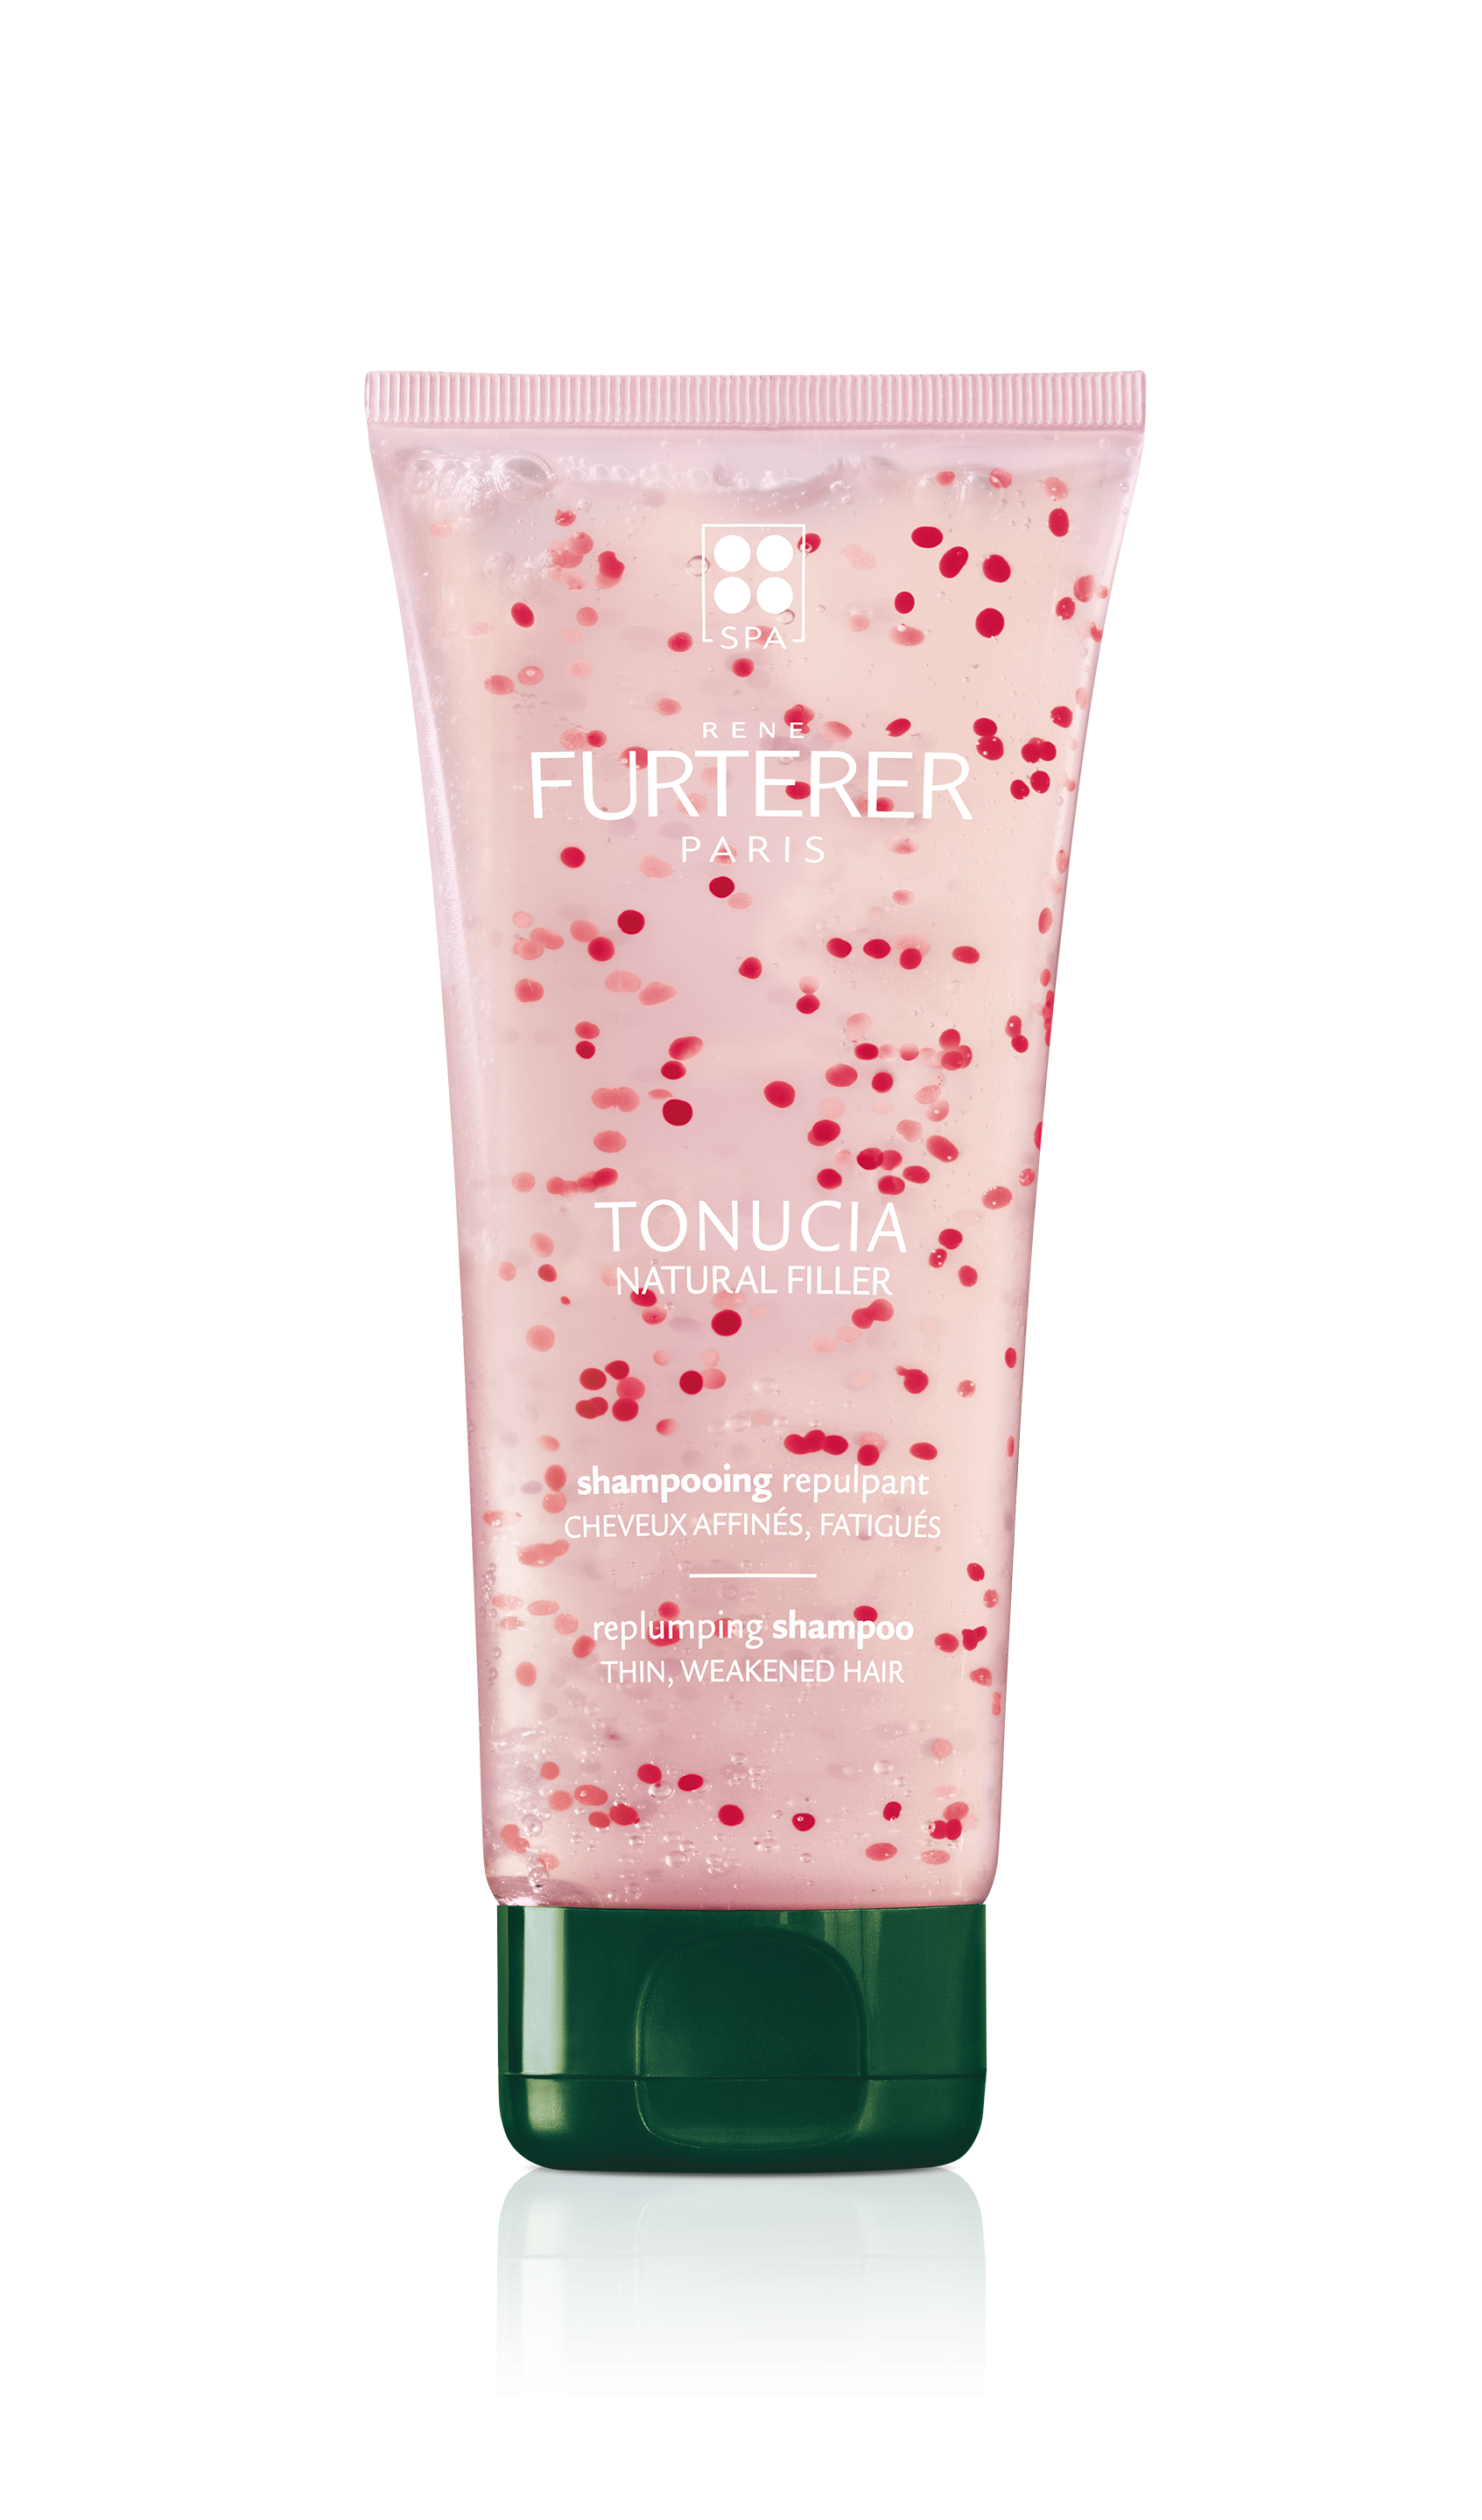 TONUCIA NATURAL FILLER - Replumping shampoo - Thin weakened hair | René Furterer